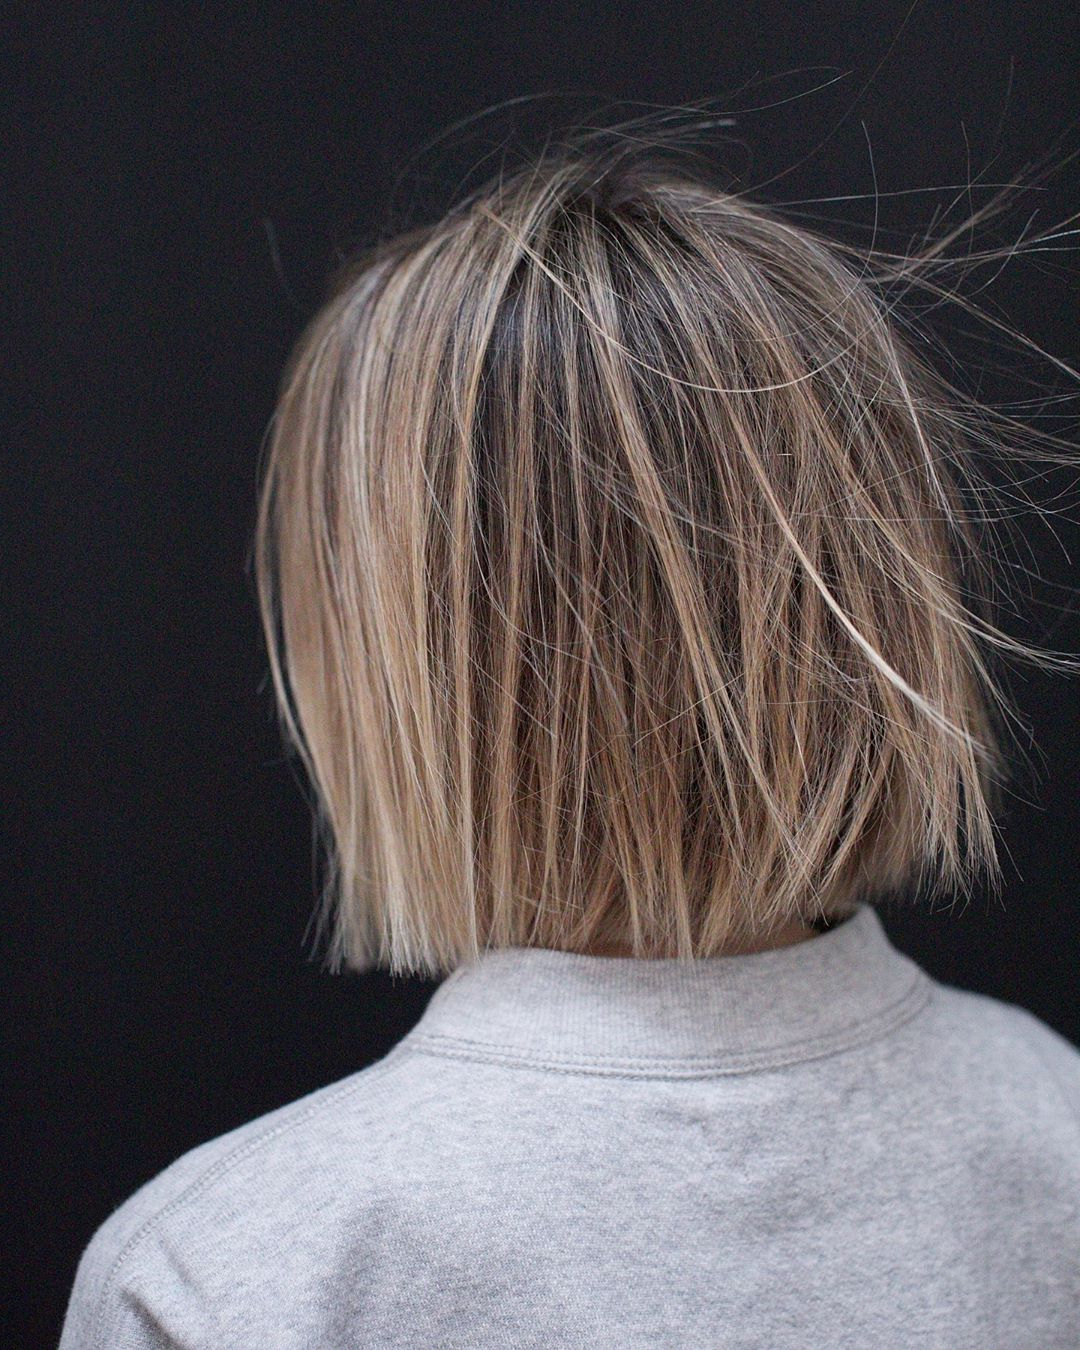 10 Casual Medium Bob Hair Cuts – Female Bob Hairstyles 2020 With Regard To Bob Hairstyles With Contrasting Highlights (View 12 of 20)